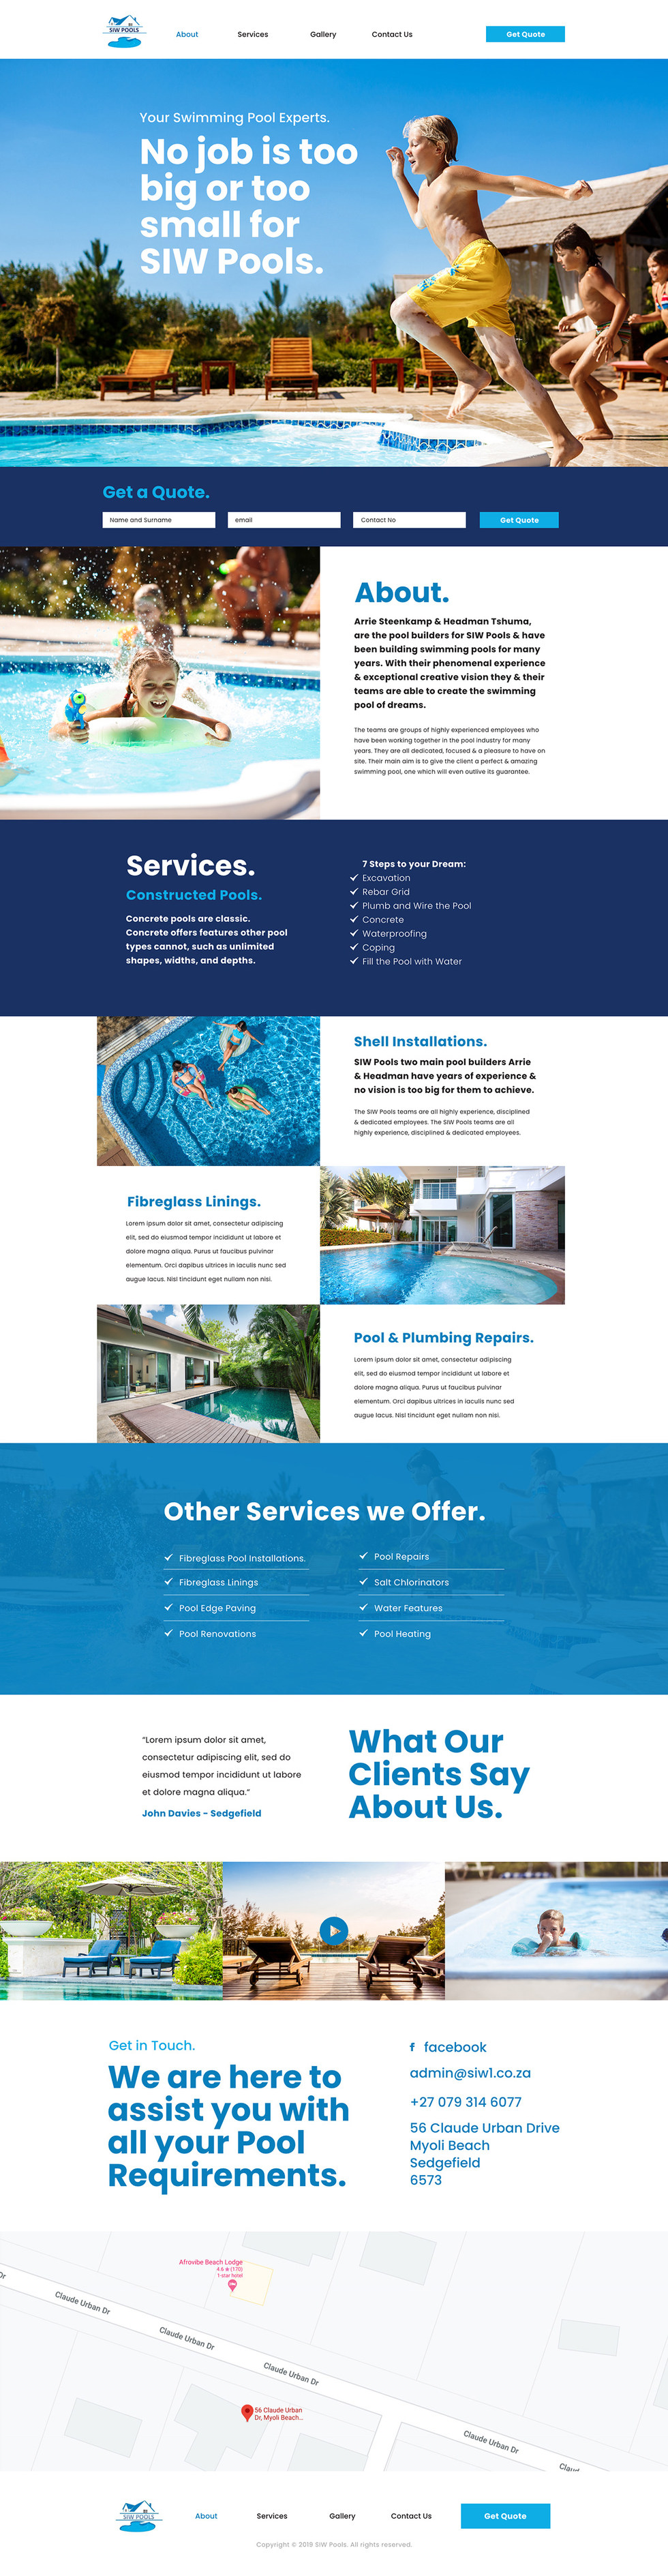 SIW-Pools-One-Pager.jpg